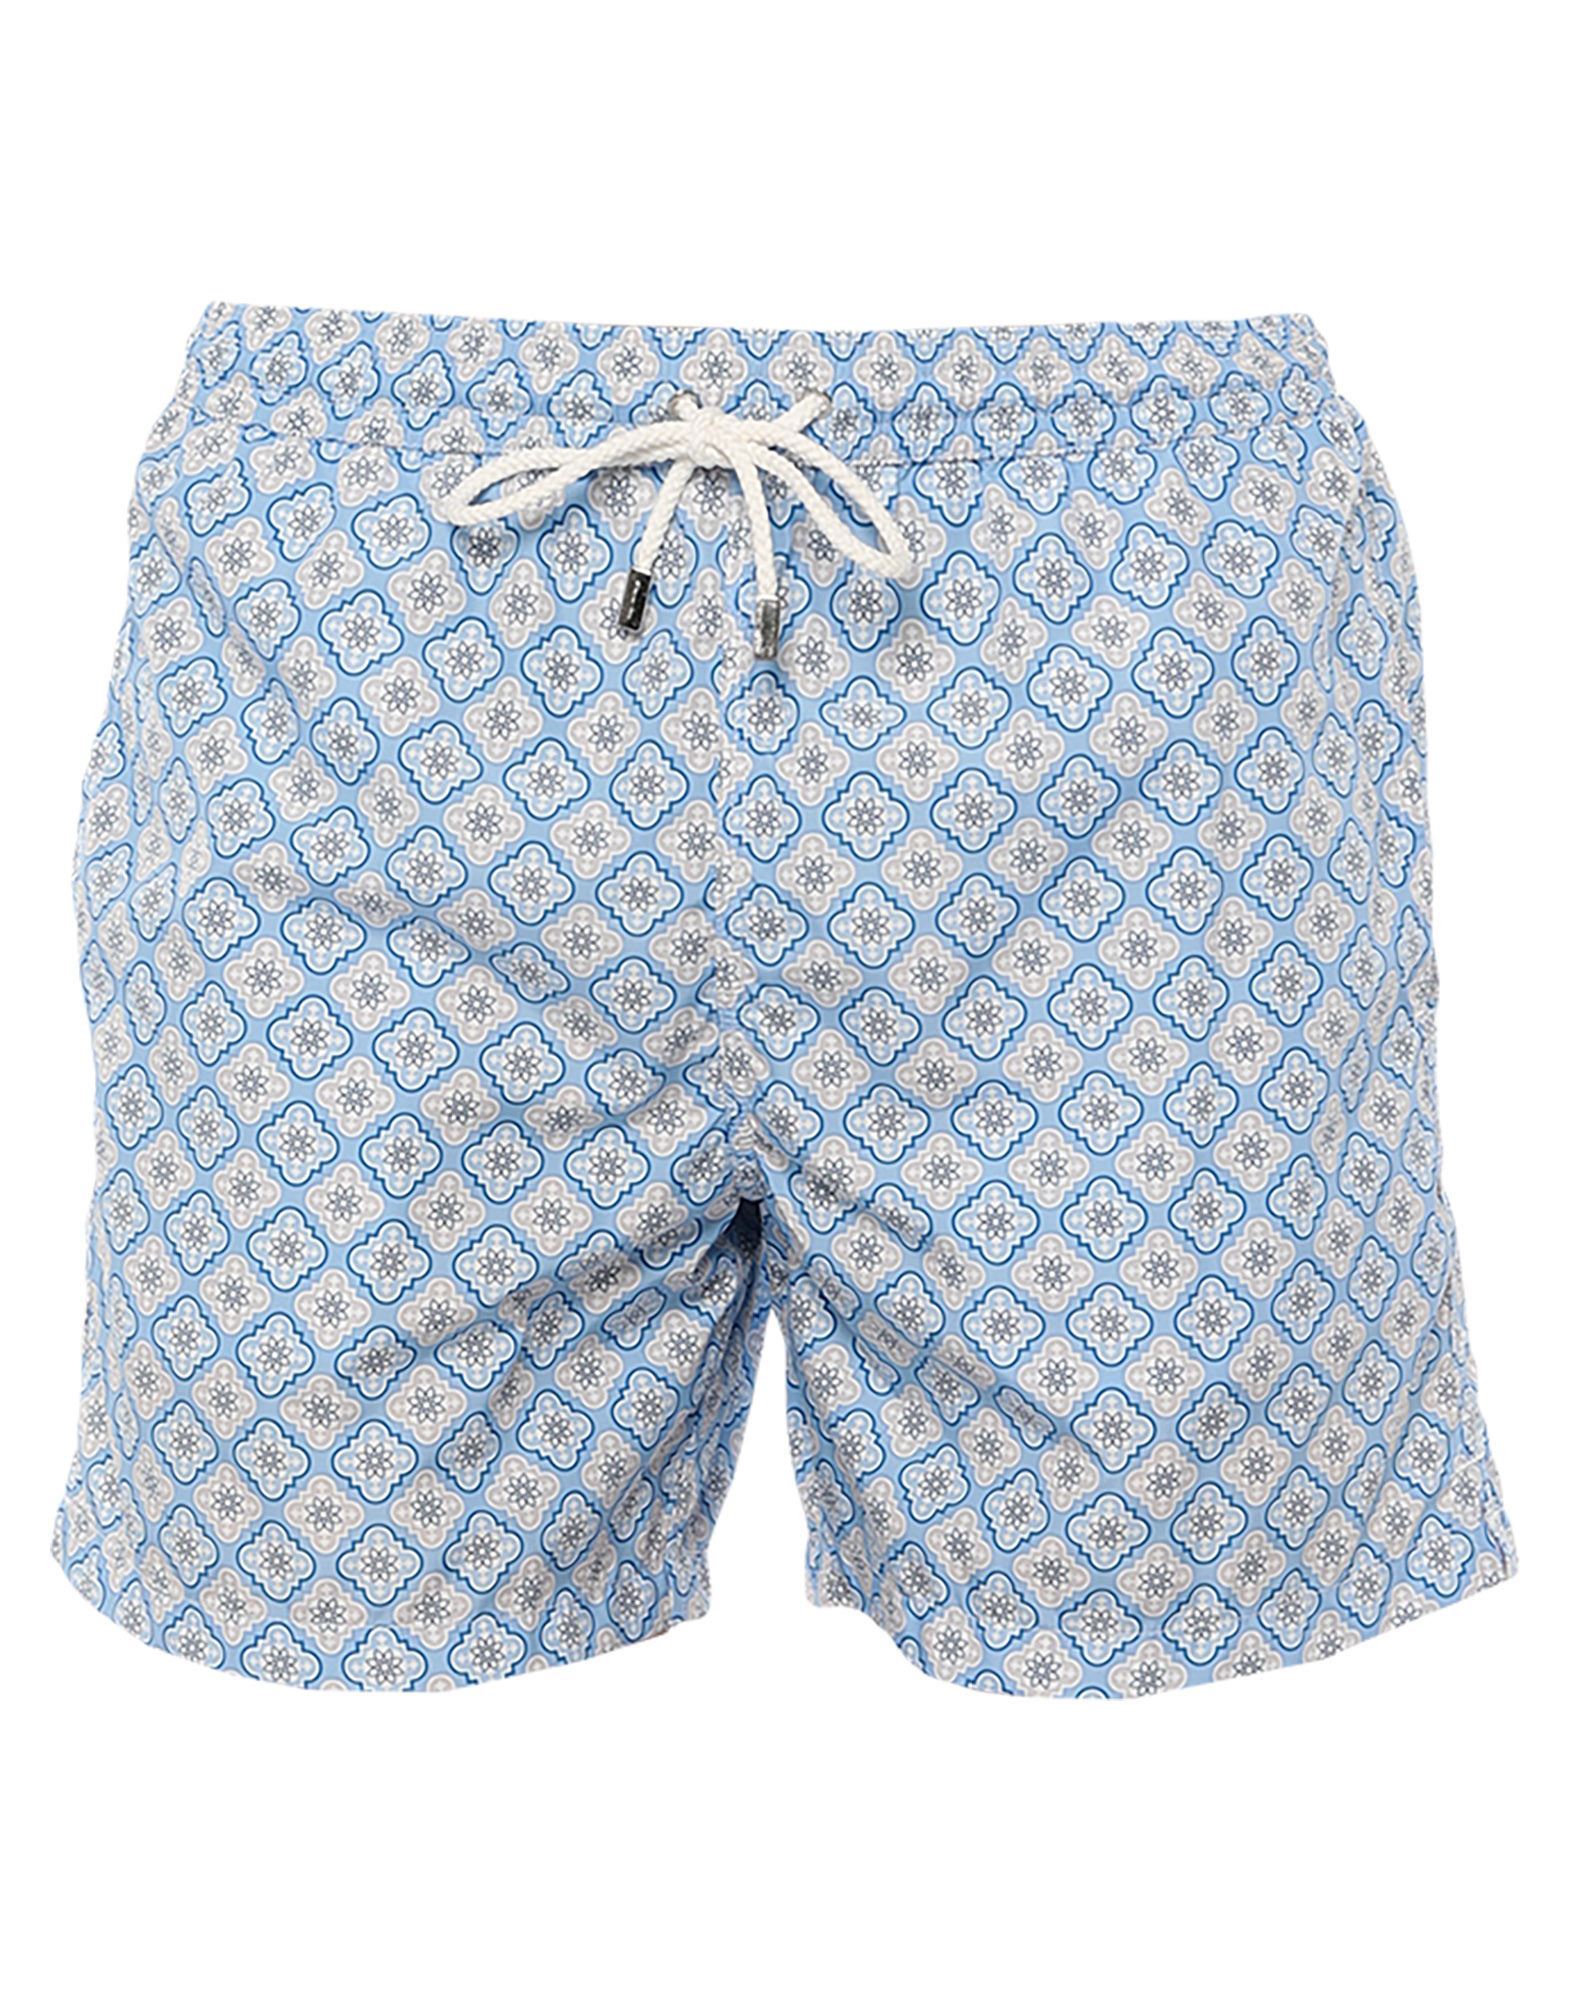 FIORIO Swim trunks - Item 47284209